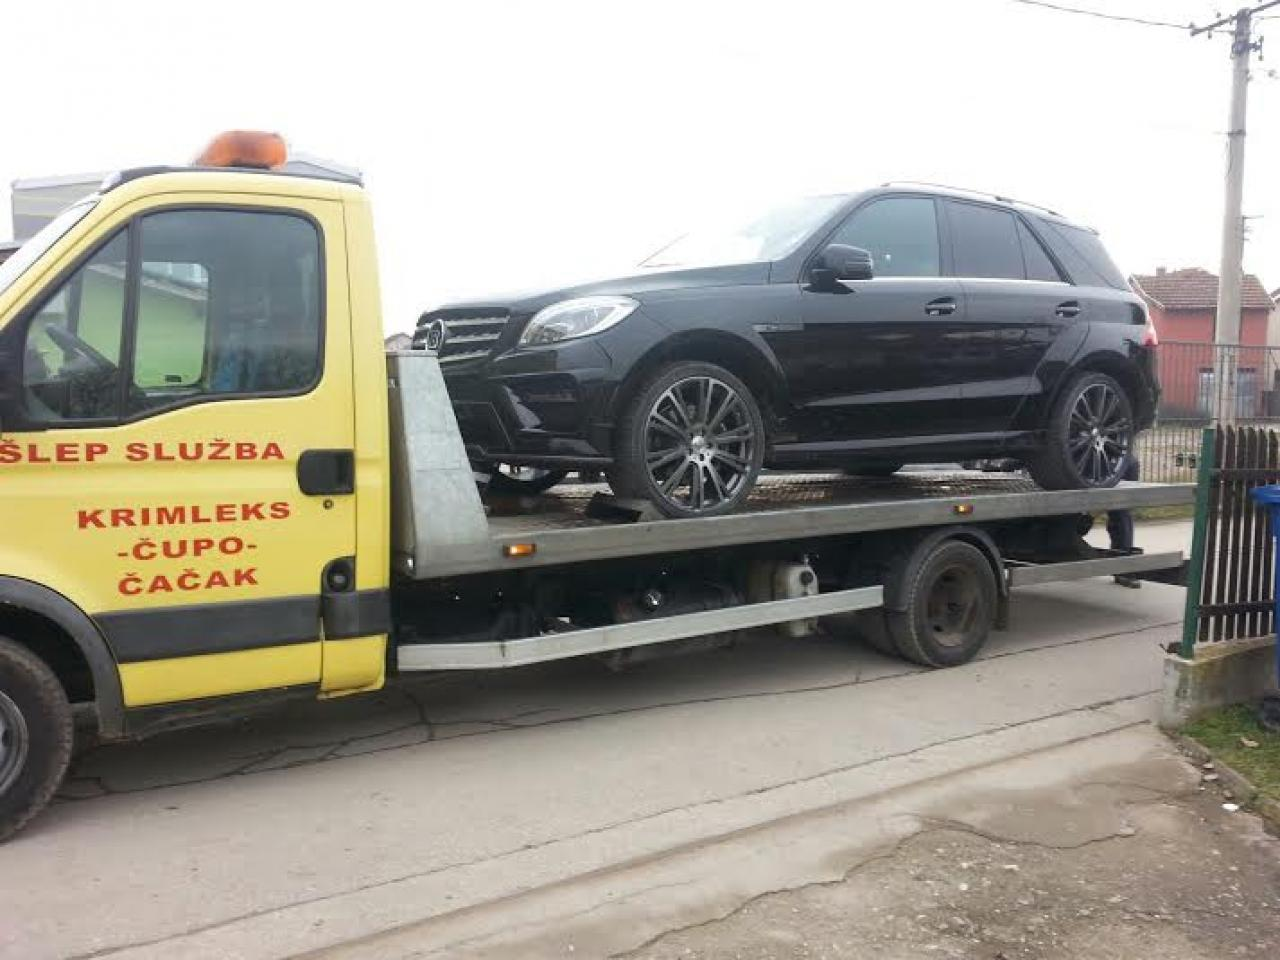 KRIMLEKS CUPO DOO Towing services Cacak - Photo 1